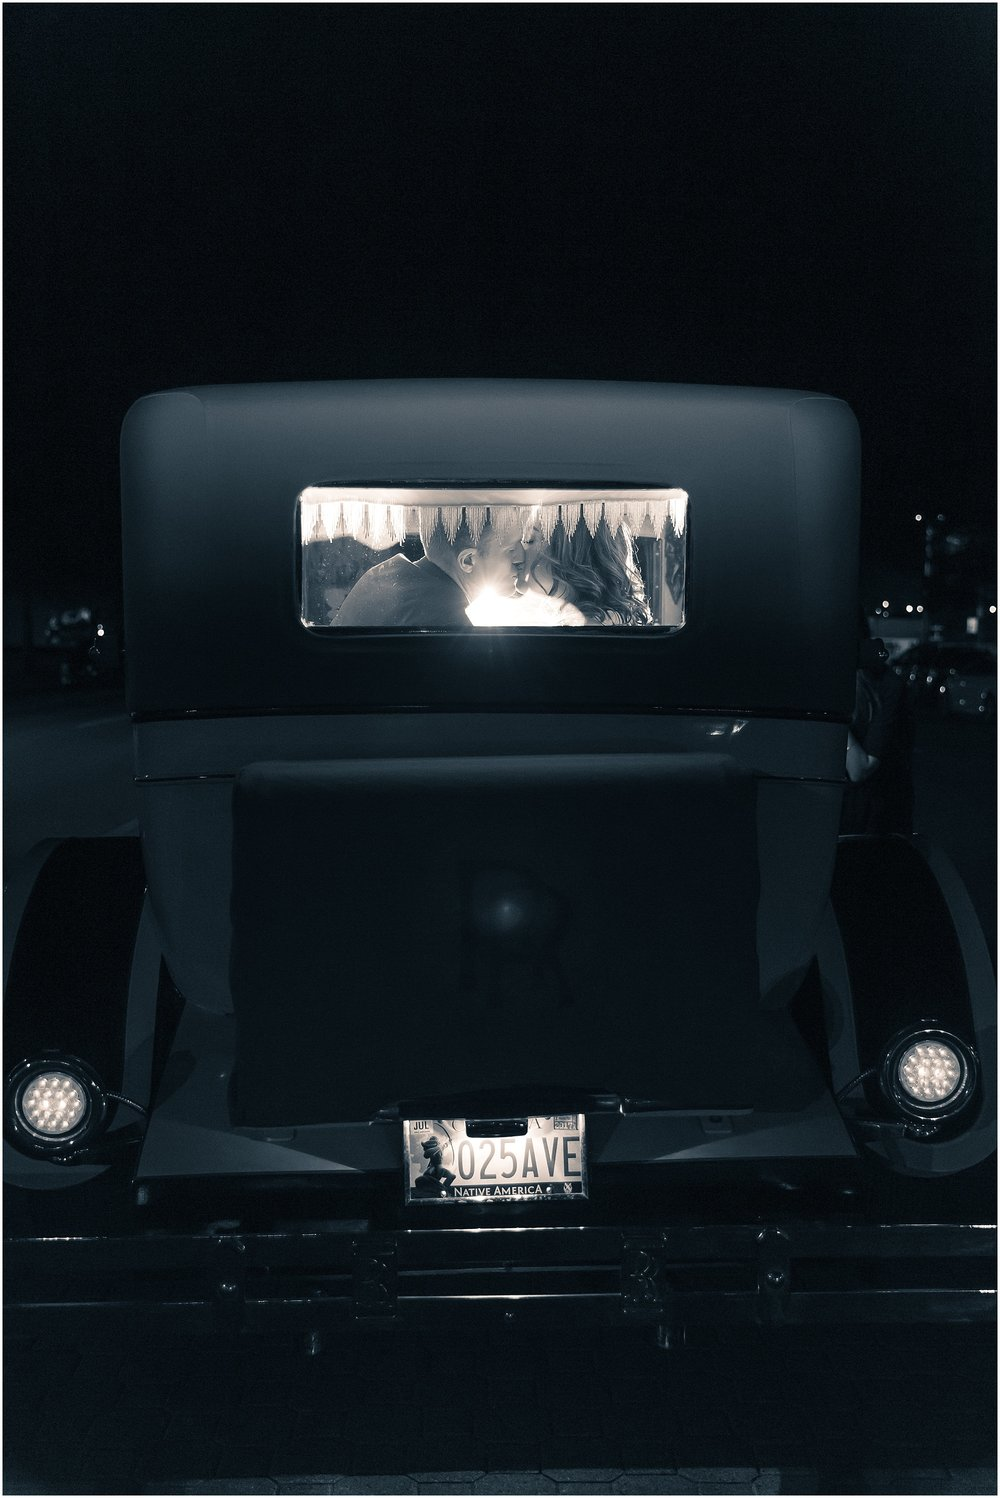 Bride & Groom kiss in the back of their Rolls Royce getaway car after their wedding at The Hippodrome, Waco, Texas - Jason & Melaina Photography - www.jasonandmelaina.com